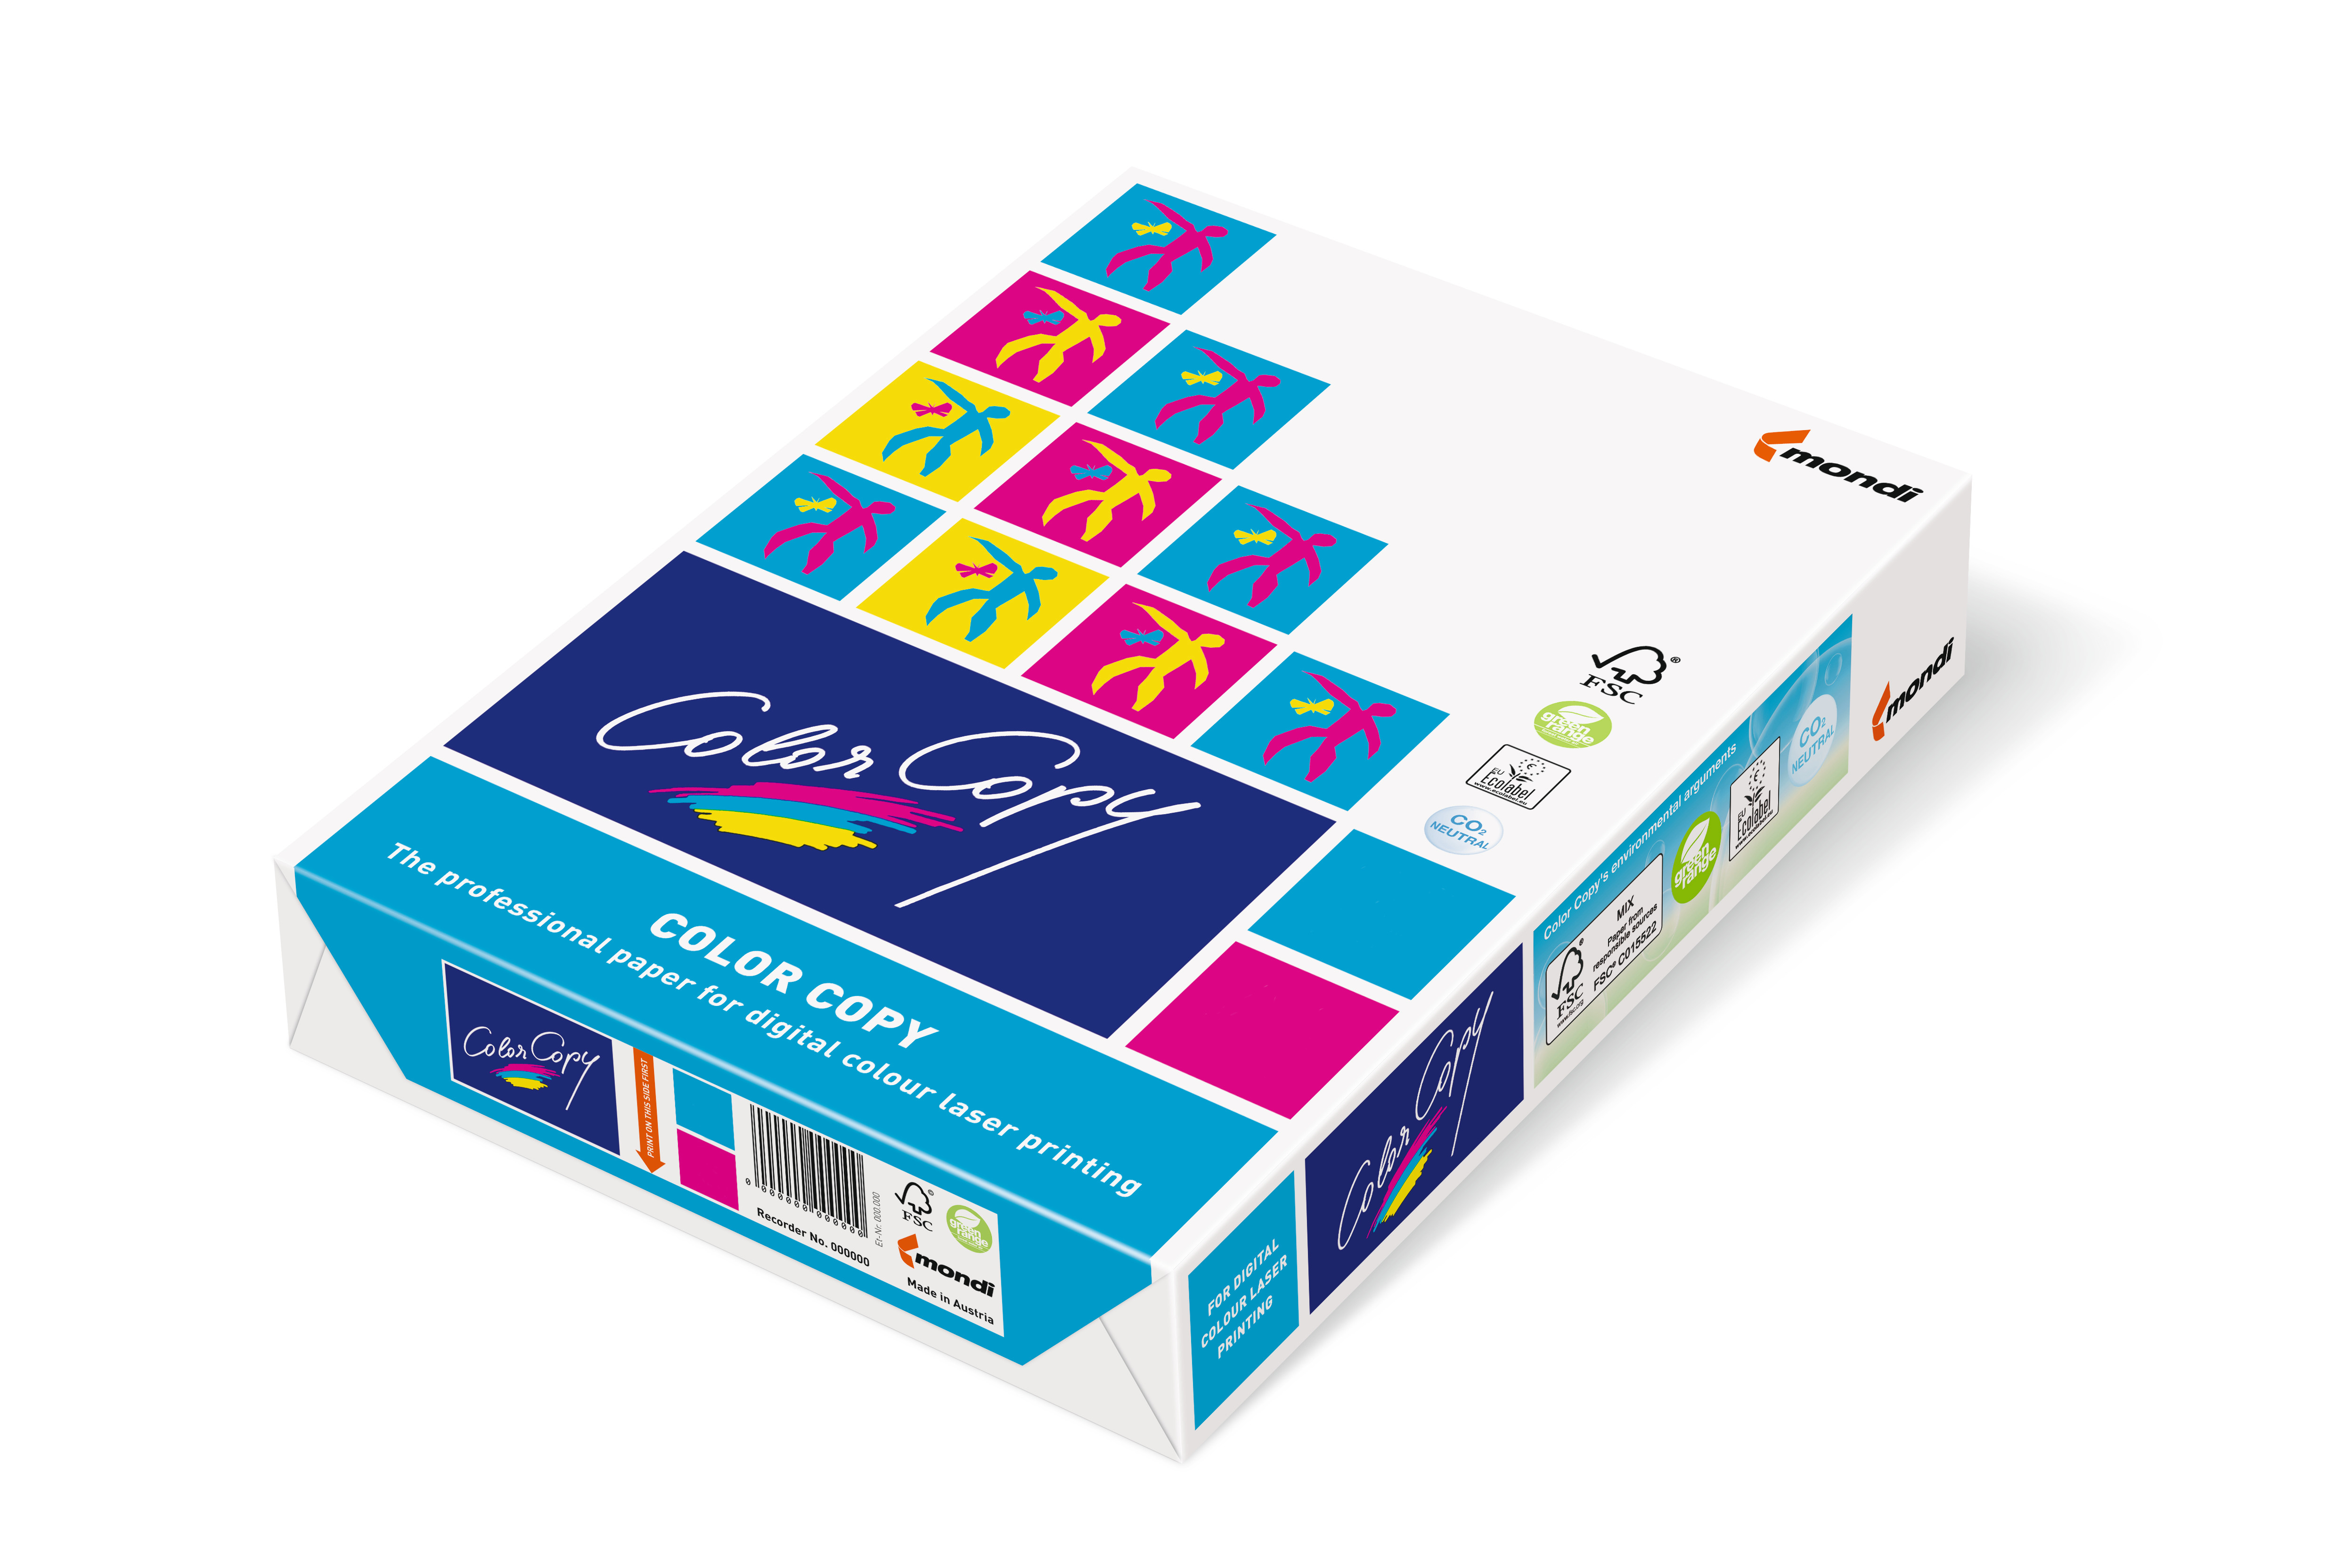 Mondi Color Copy Papier 90g/m² DIN-A5 - 1.000 Blatt